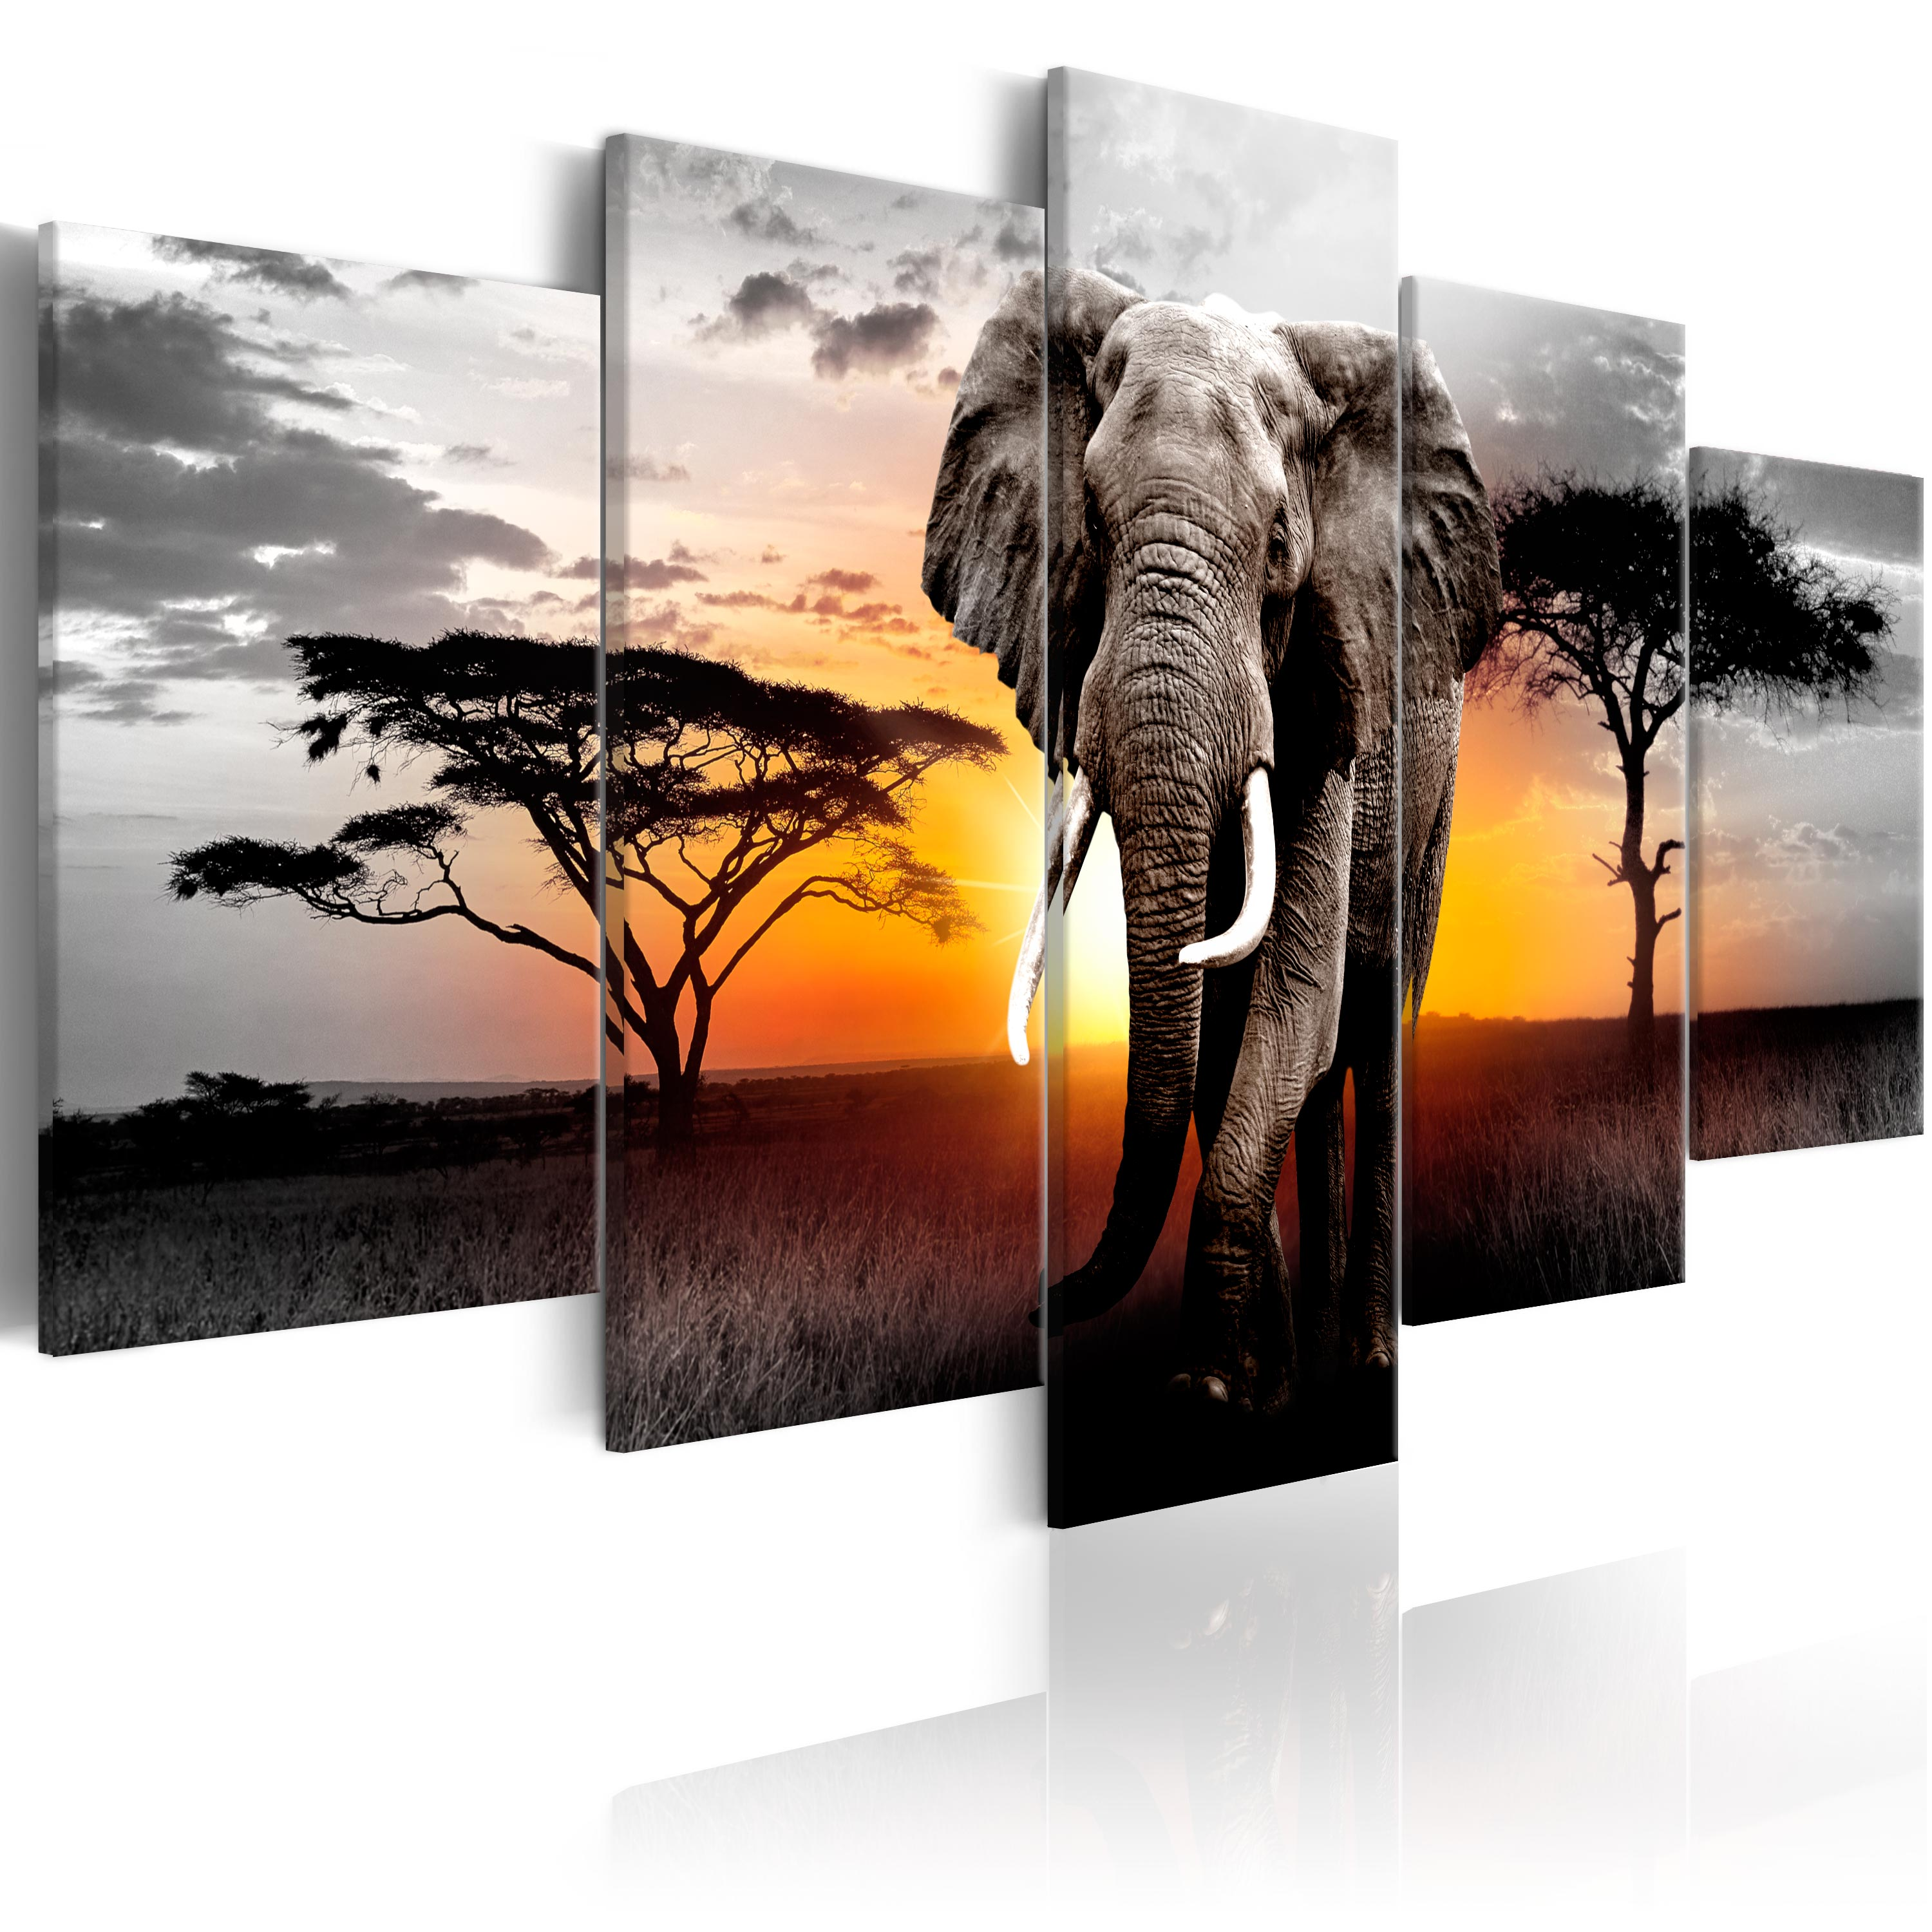 wandbilder xxl elefant afrika natur tier leinwand bilder. Black Bedroom Furniture Sets. Home Design Ideas